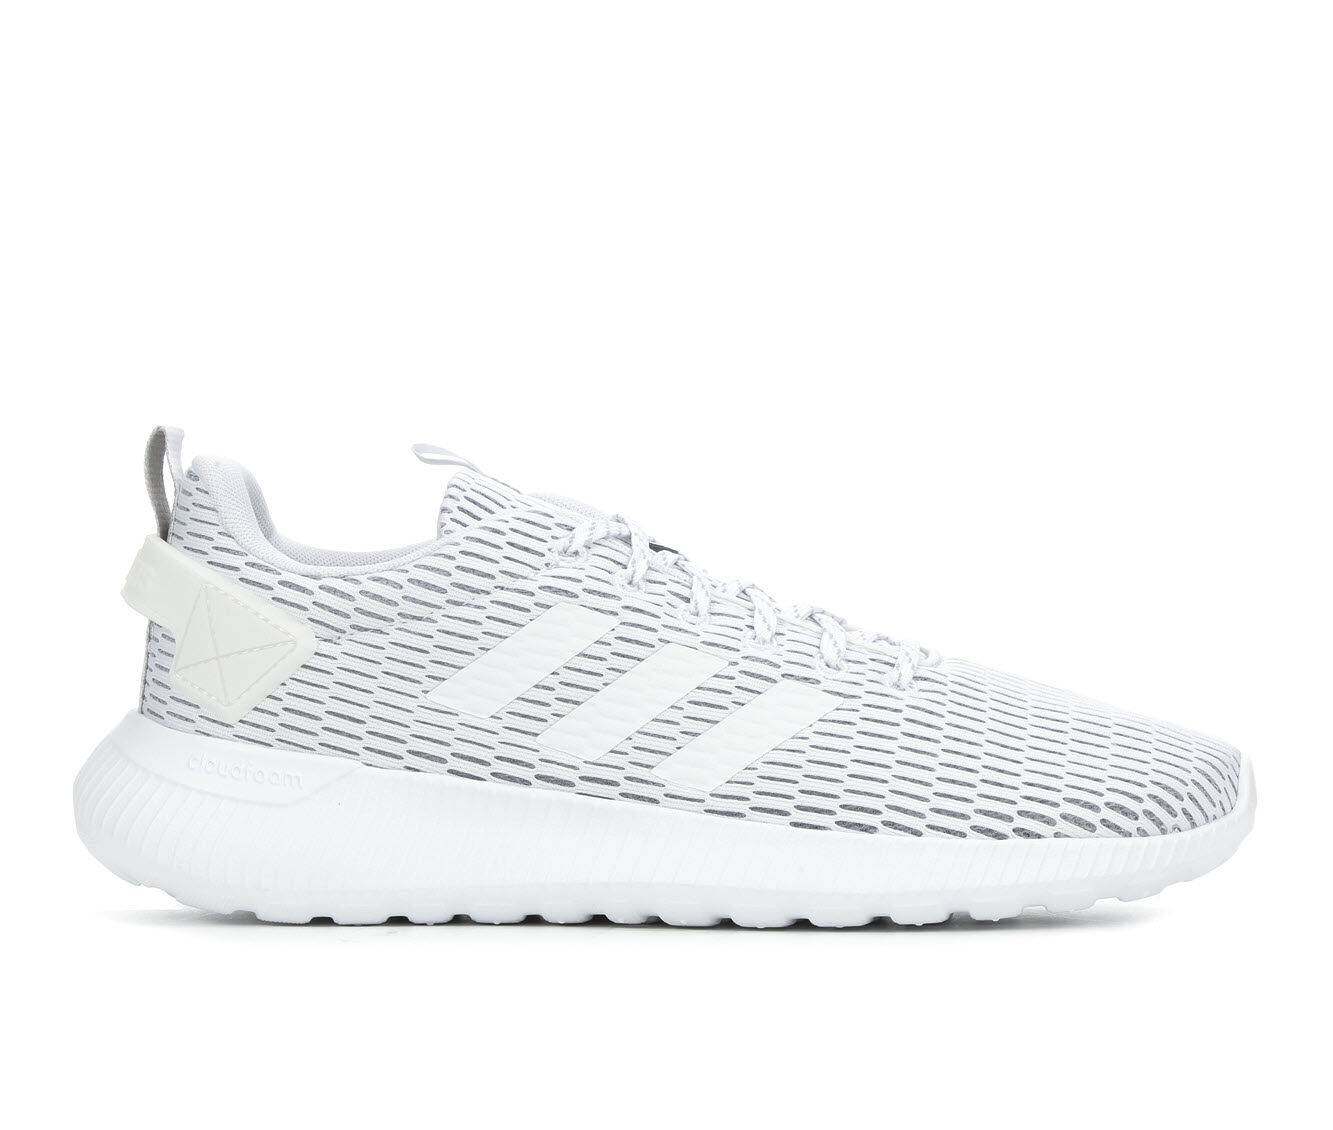 Men's Adidas Lite Racer Climacool Sneakers White/White/Gry